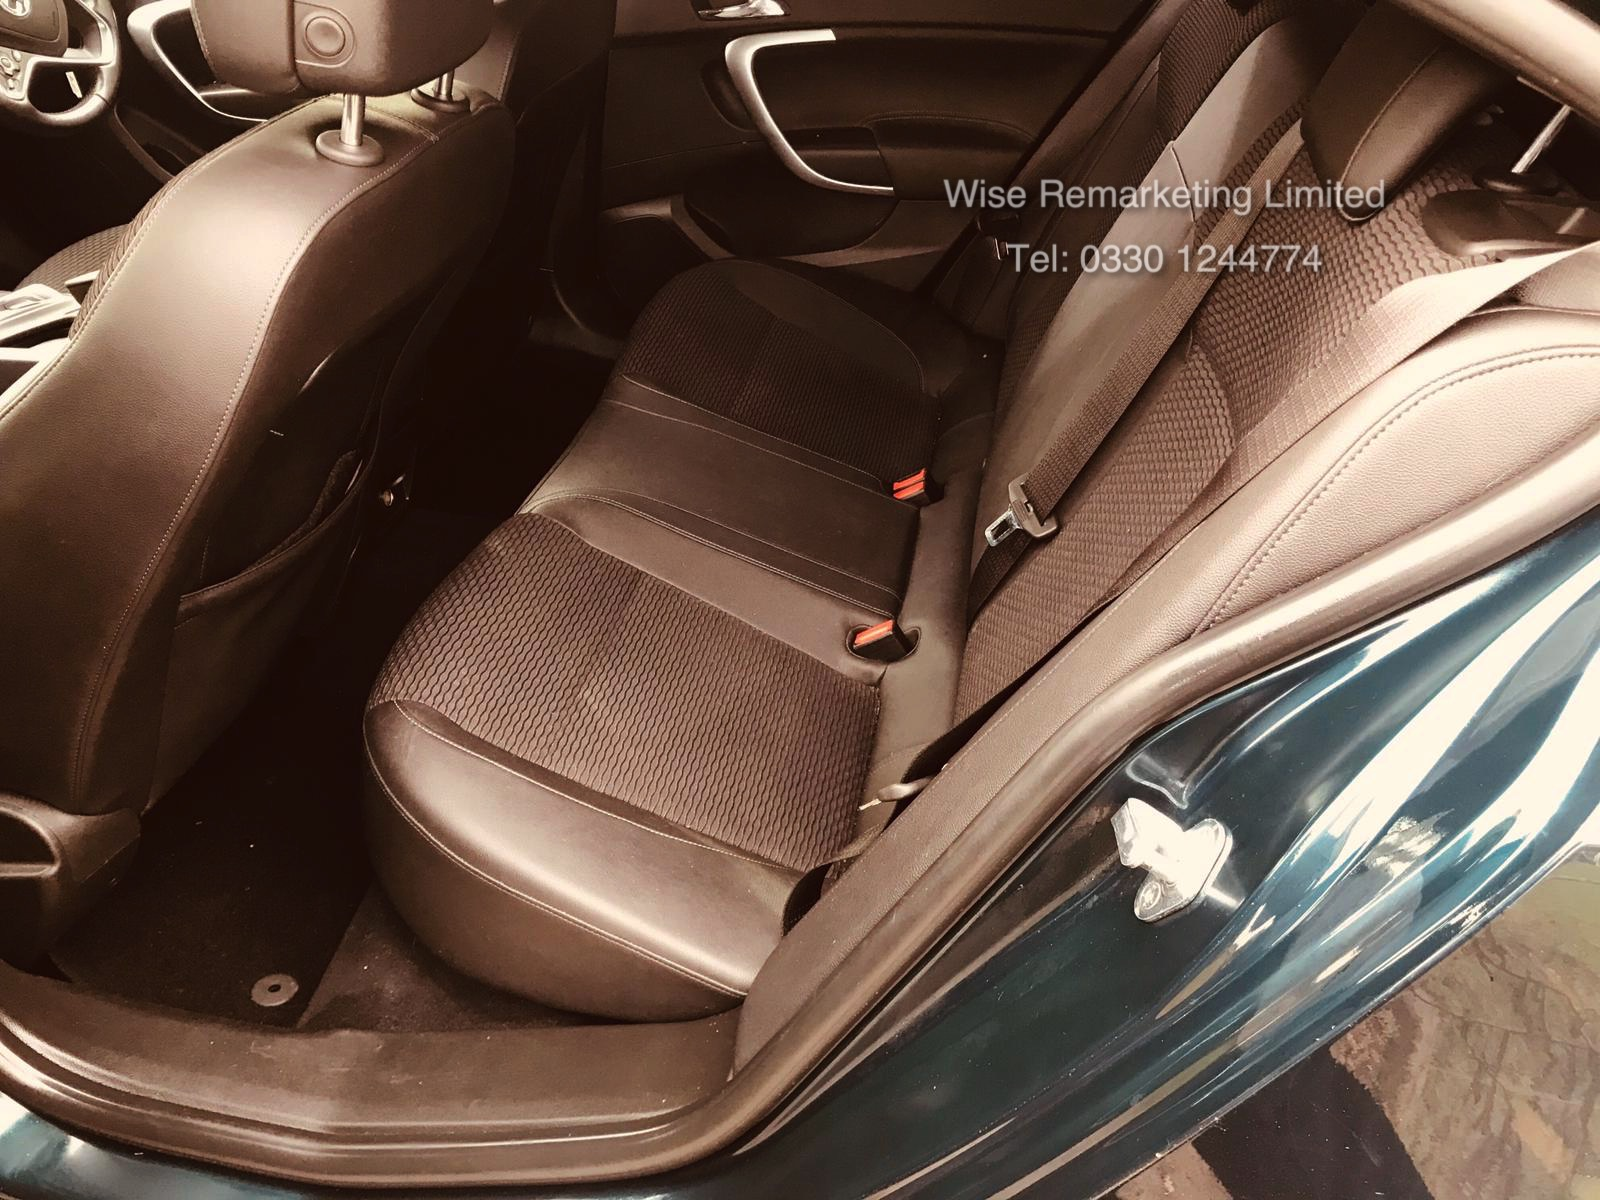 (RESERVE MET) Vauxhall Insignia 2.0 CDTI Techline 6 Speed - 2014 Model - Part Leather - - Image 13 of 20